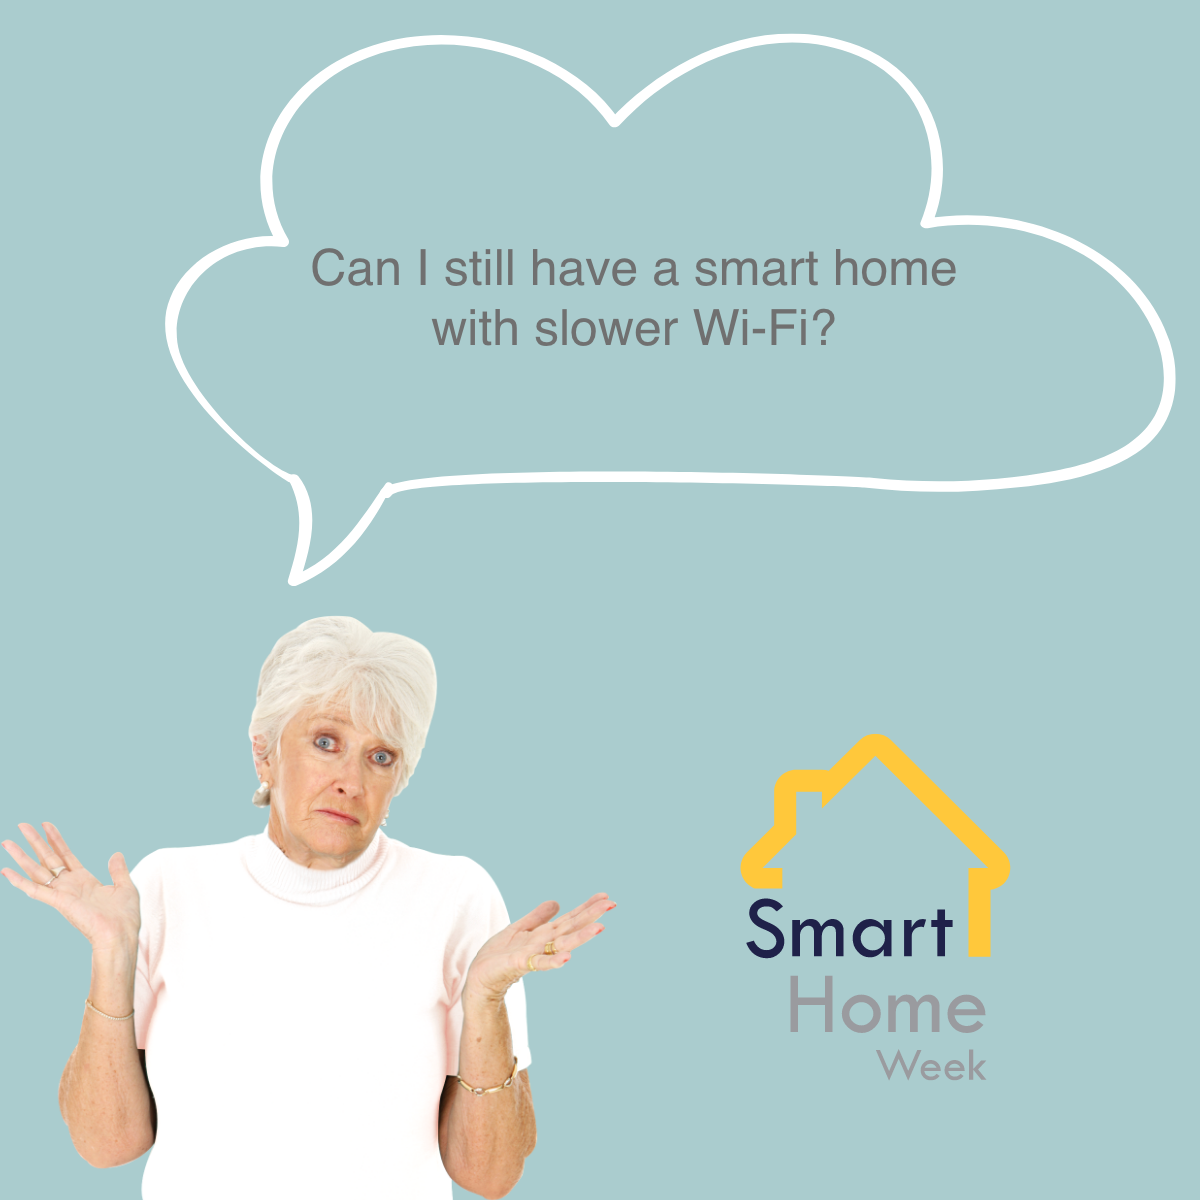 woman looking confused with speech bubble saying can i still have a smart home with slower wi-fi?